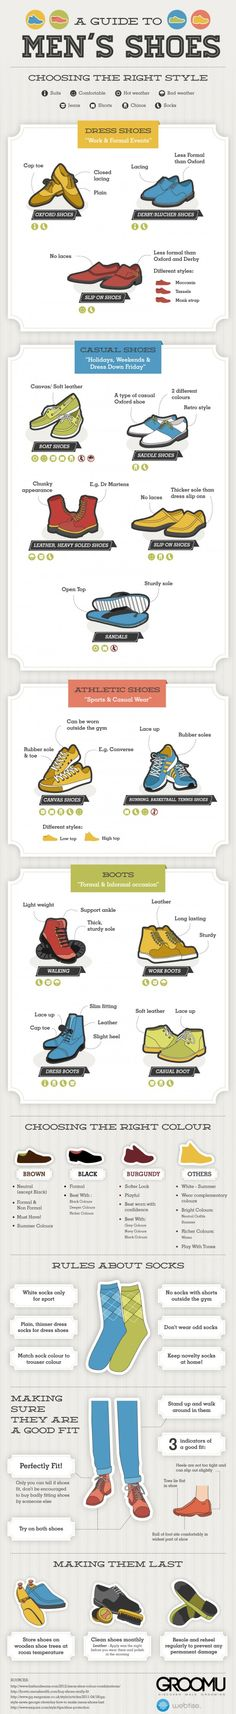 Infographic | A Guide to Men's Shoes | Image Granted